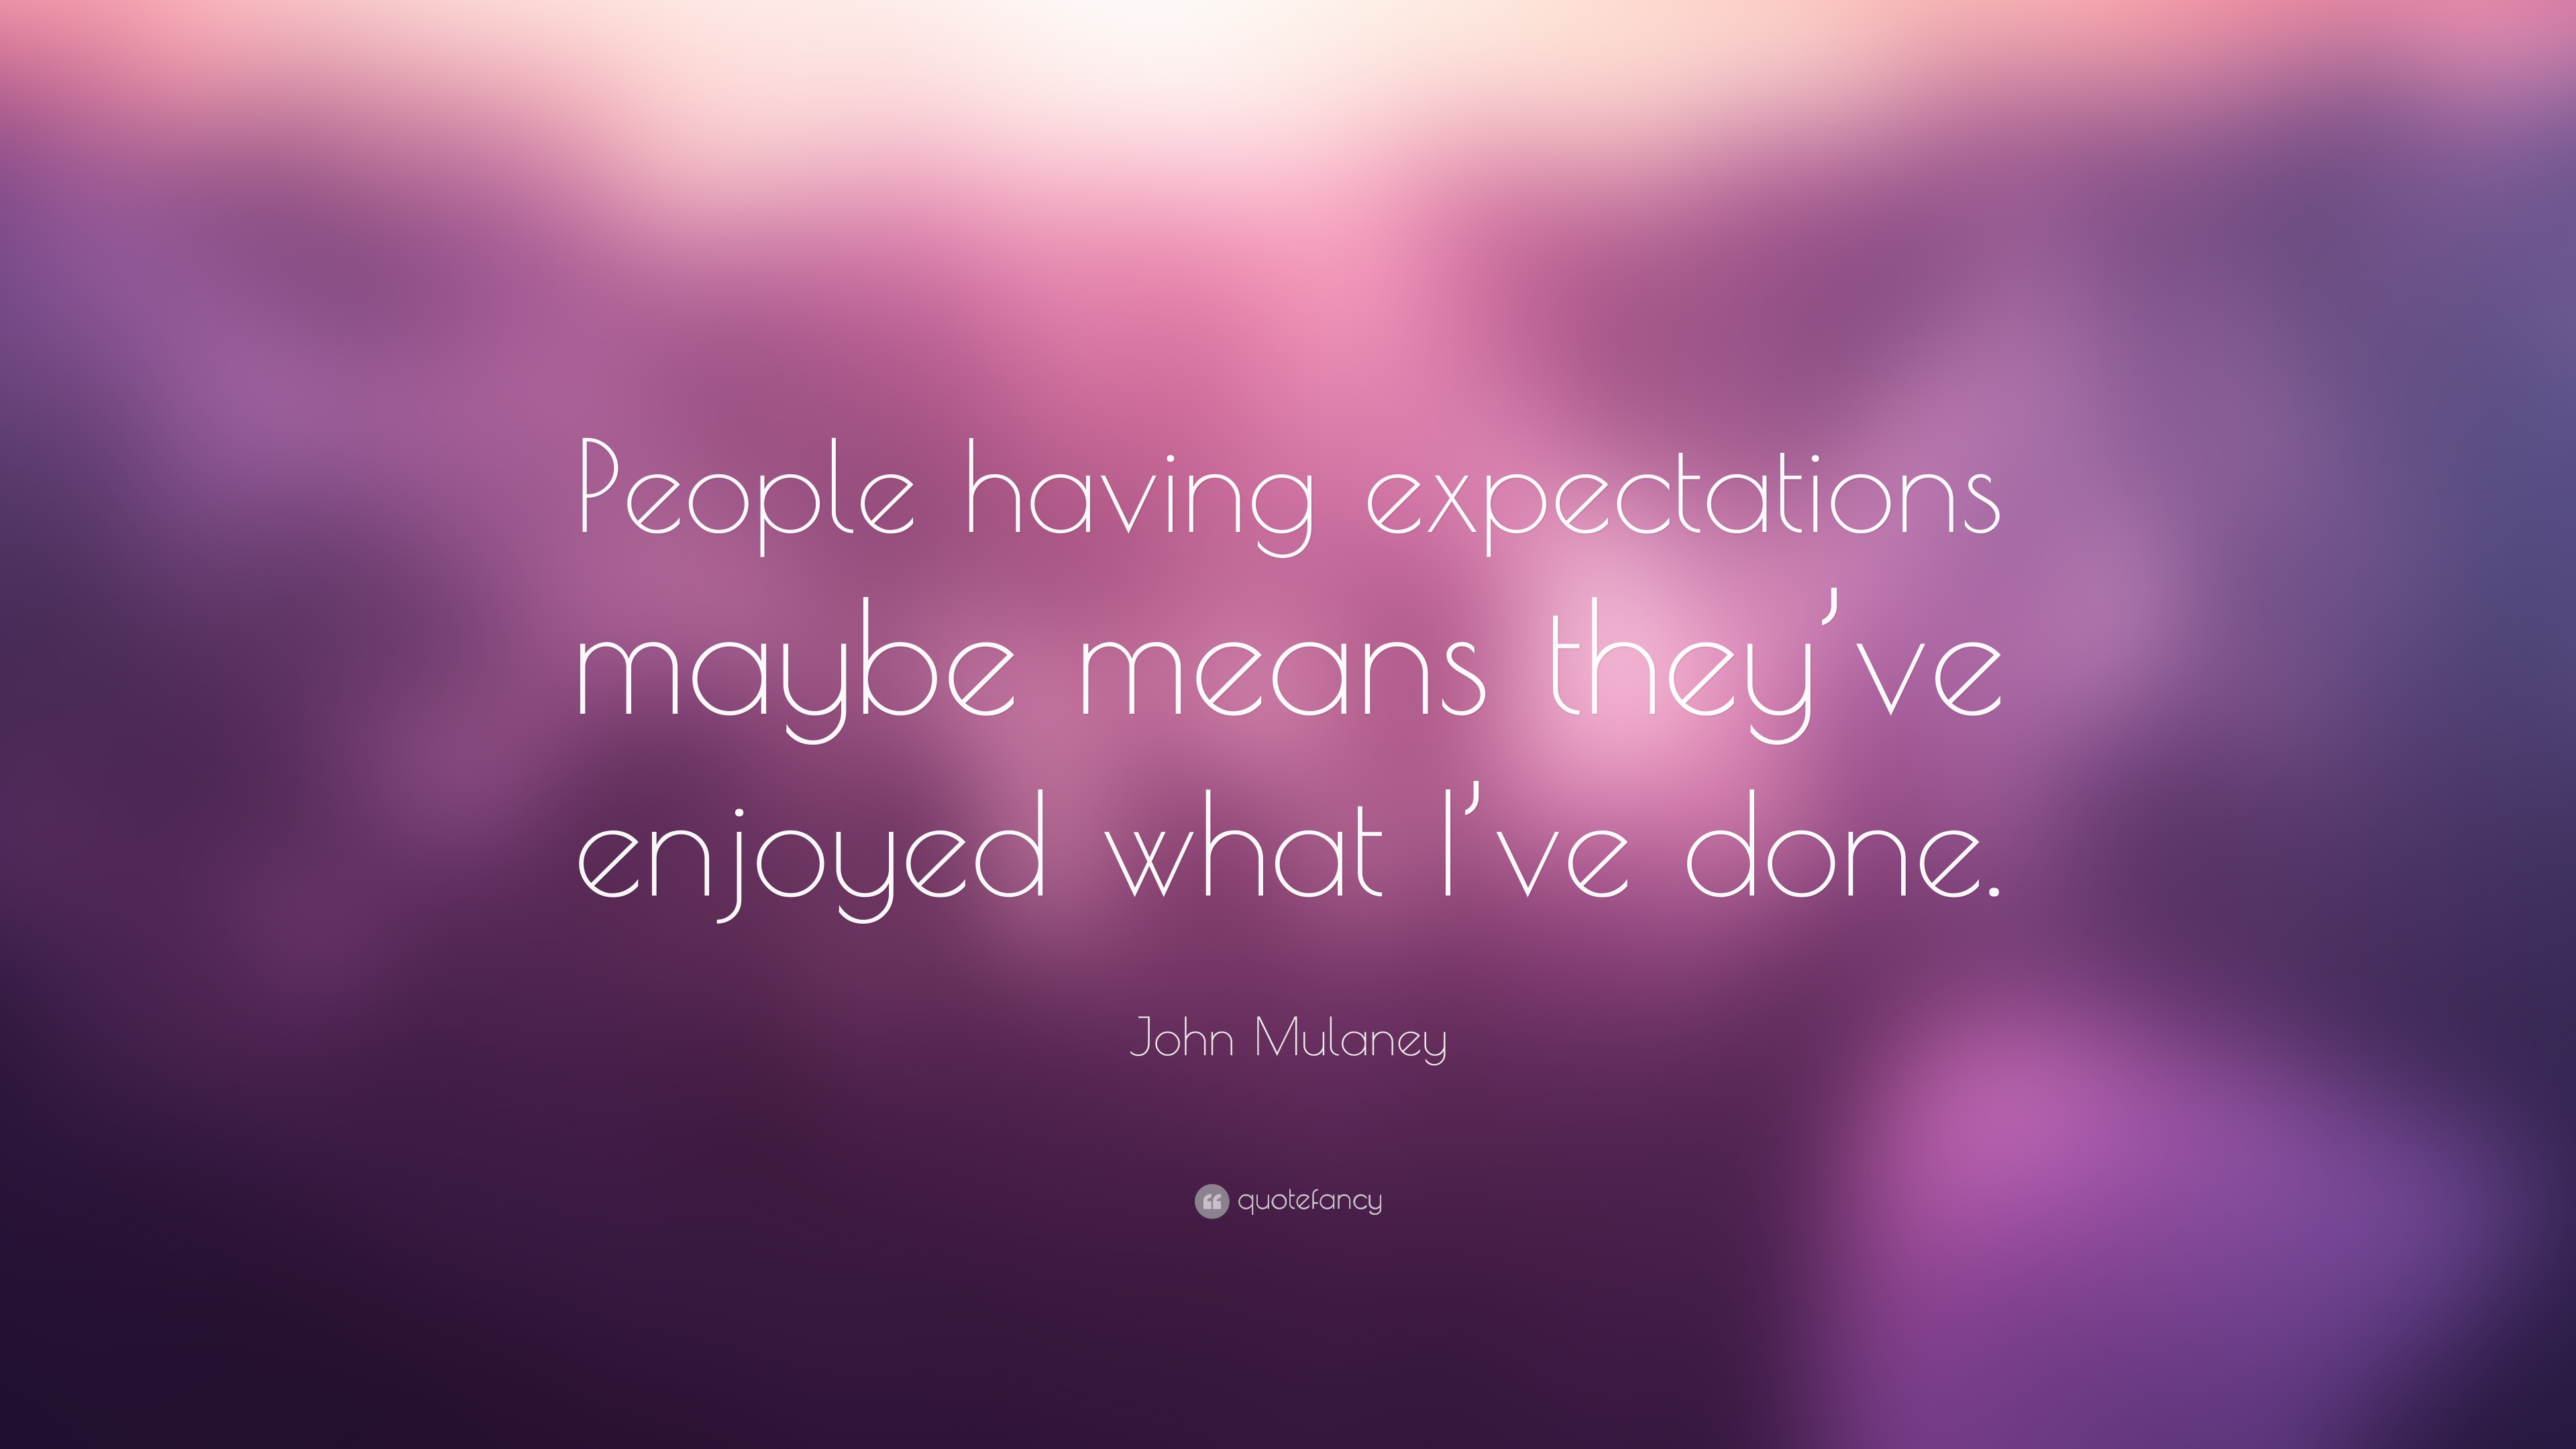 Expectations Quote Wallpapers John Mulaney Quotes 33 Wallpapers Quotefancy